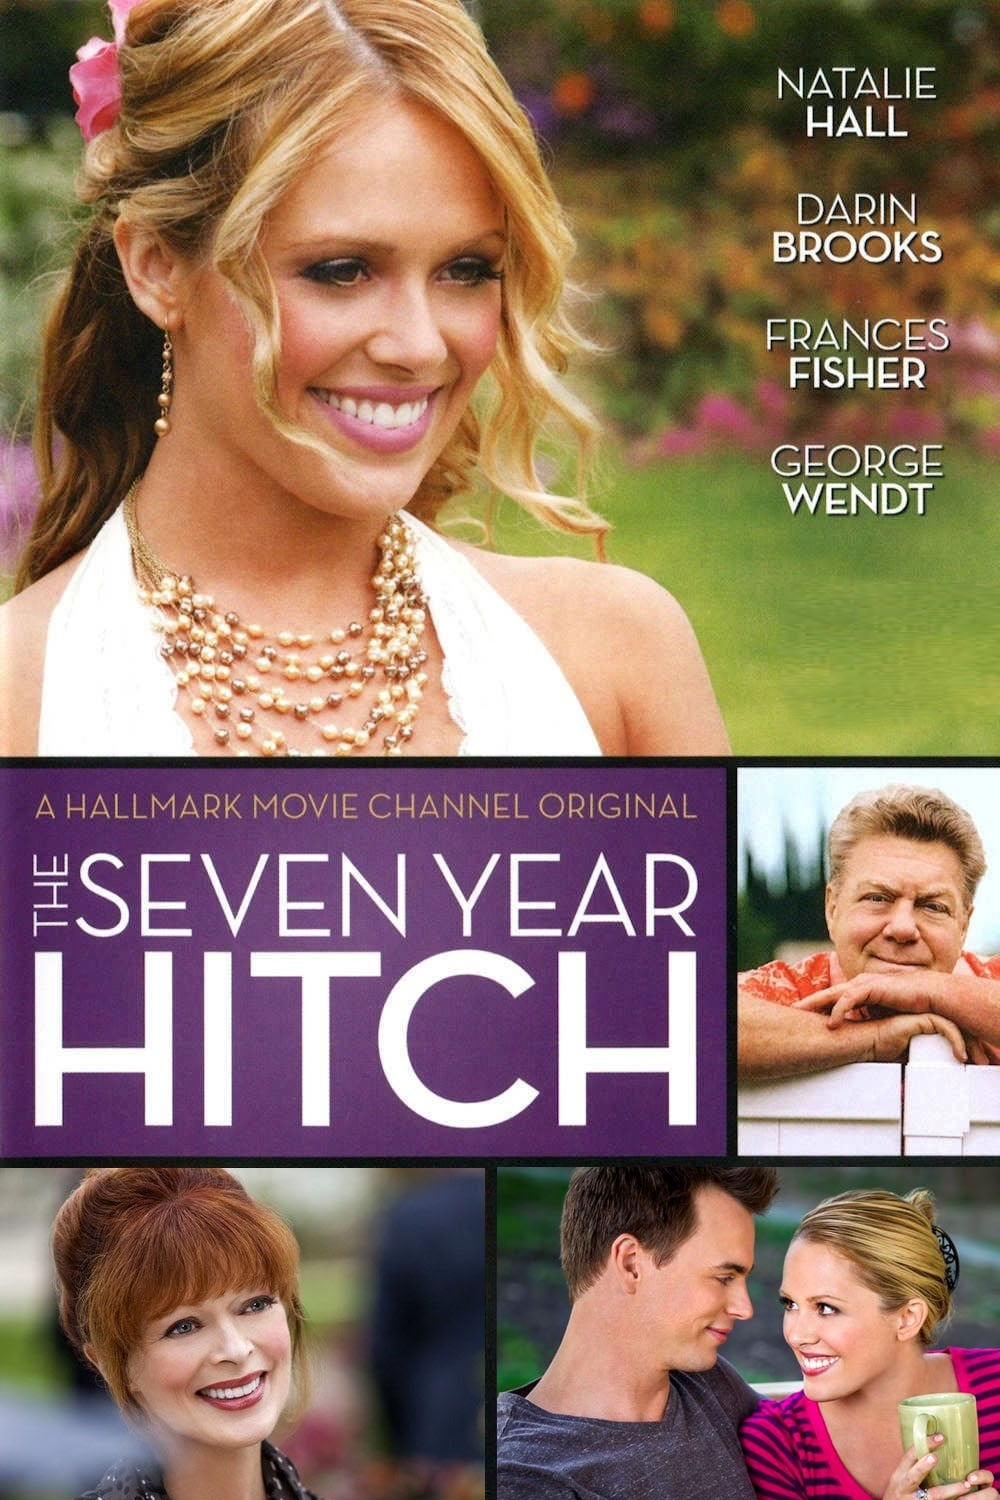 watch The Seven Year Hitch 2012 online free